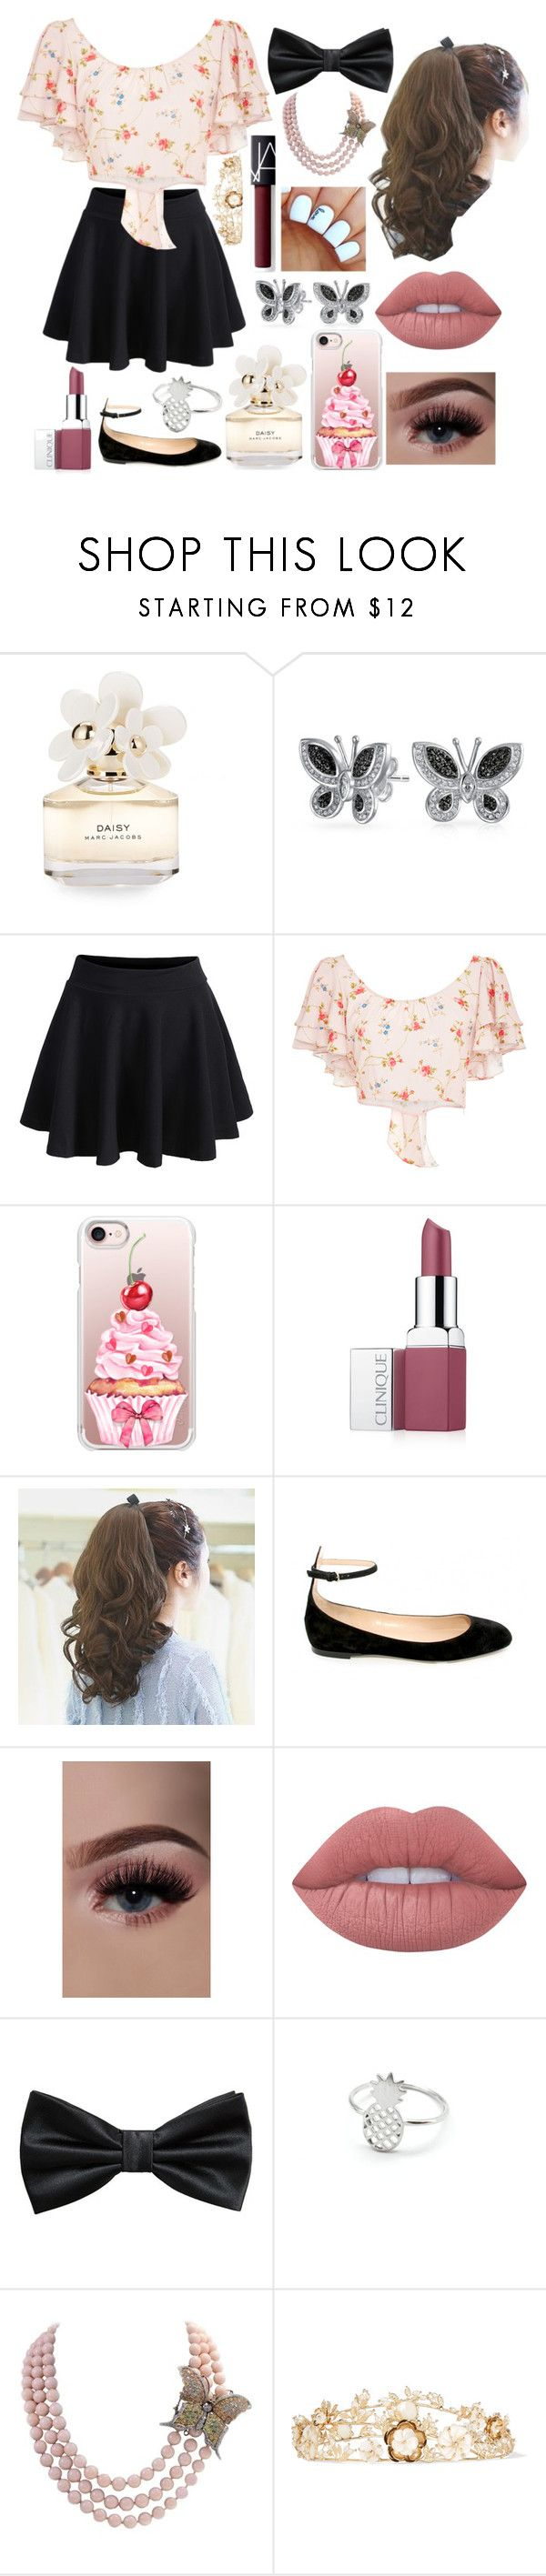 """""""Cute"""" by fandoms-and-good-music ❤ liked on Polyvore featuring Marc Jacobs, WithChic, Jill Stuart, Casetify, Clinique, Lime Crime, MANGO, Rosantica and NARS Cosmetics"""